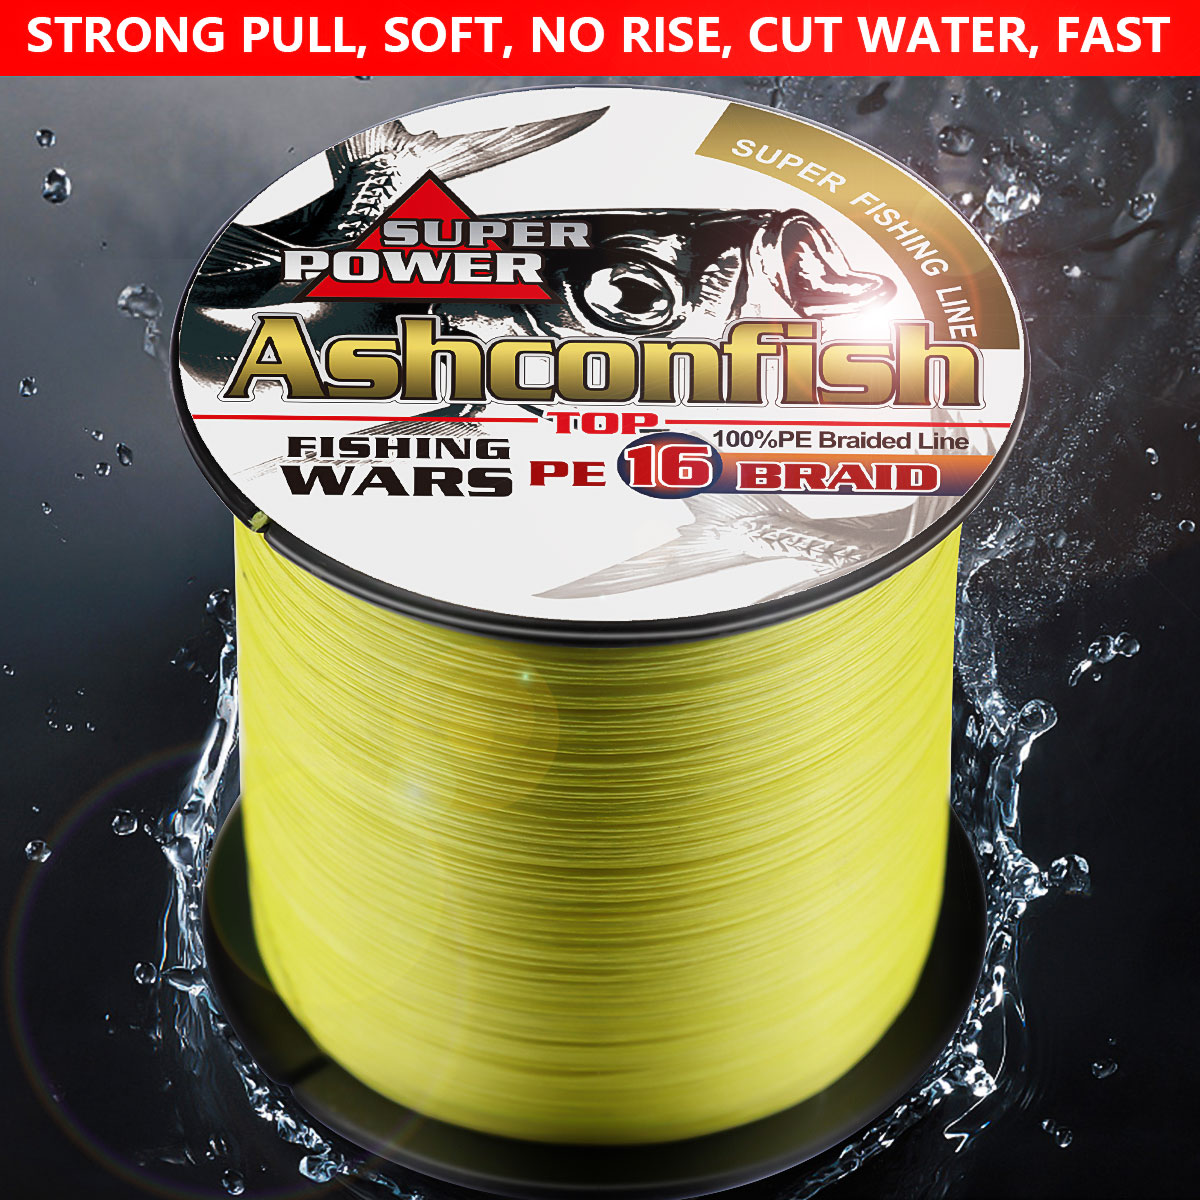 Super hollowcore braided fishing line 1500M 16 Strands pe super Ocean Fishing braided wires 20 500LBS leader line 0.16 2.0mm - 3